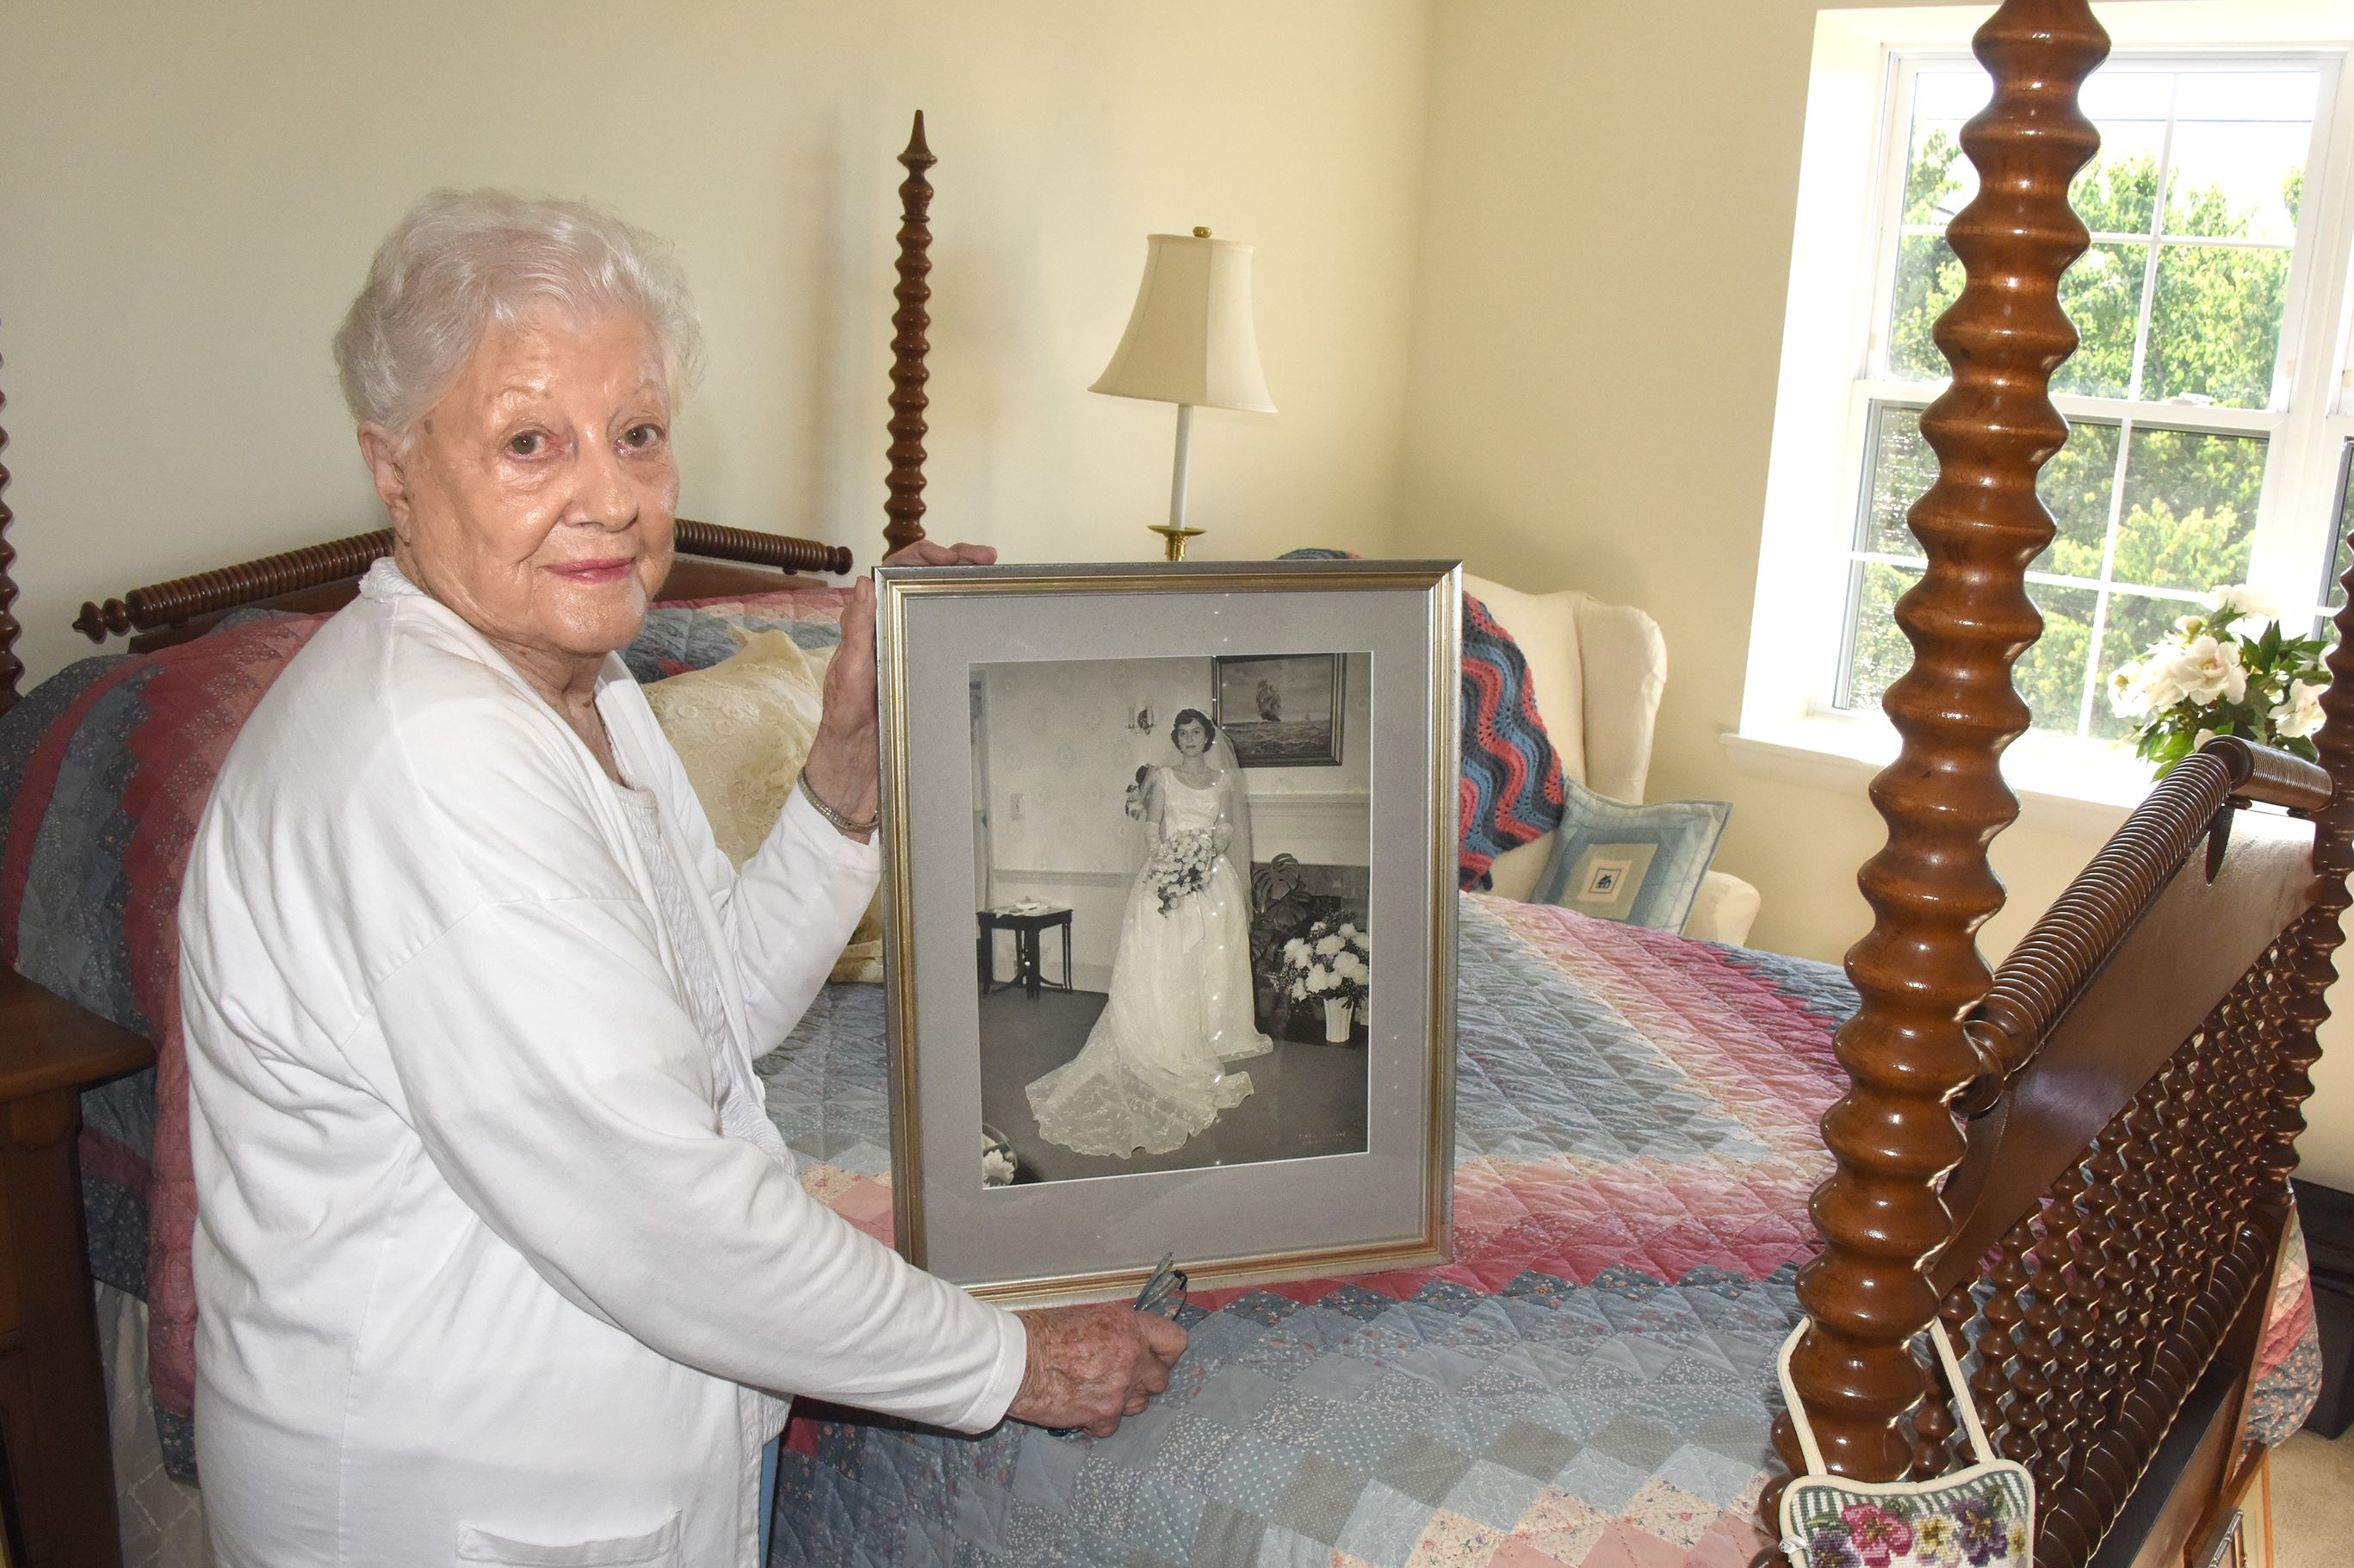 20170609dsDownsizingHomesPremiumMag08-6  Betty Price, formerly of Fox Chapel, holds a portrait of herself in on her wedding day one of several photos she kept for her move into Longwood at Oakmont Retirement Home.